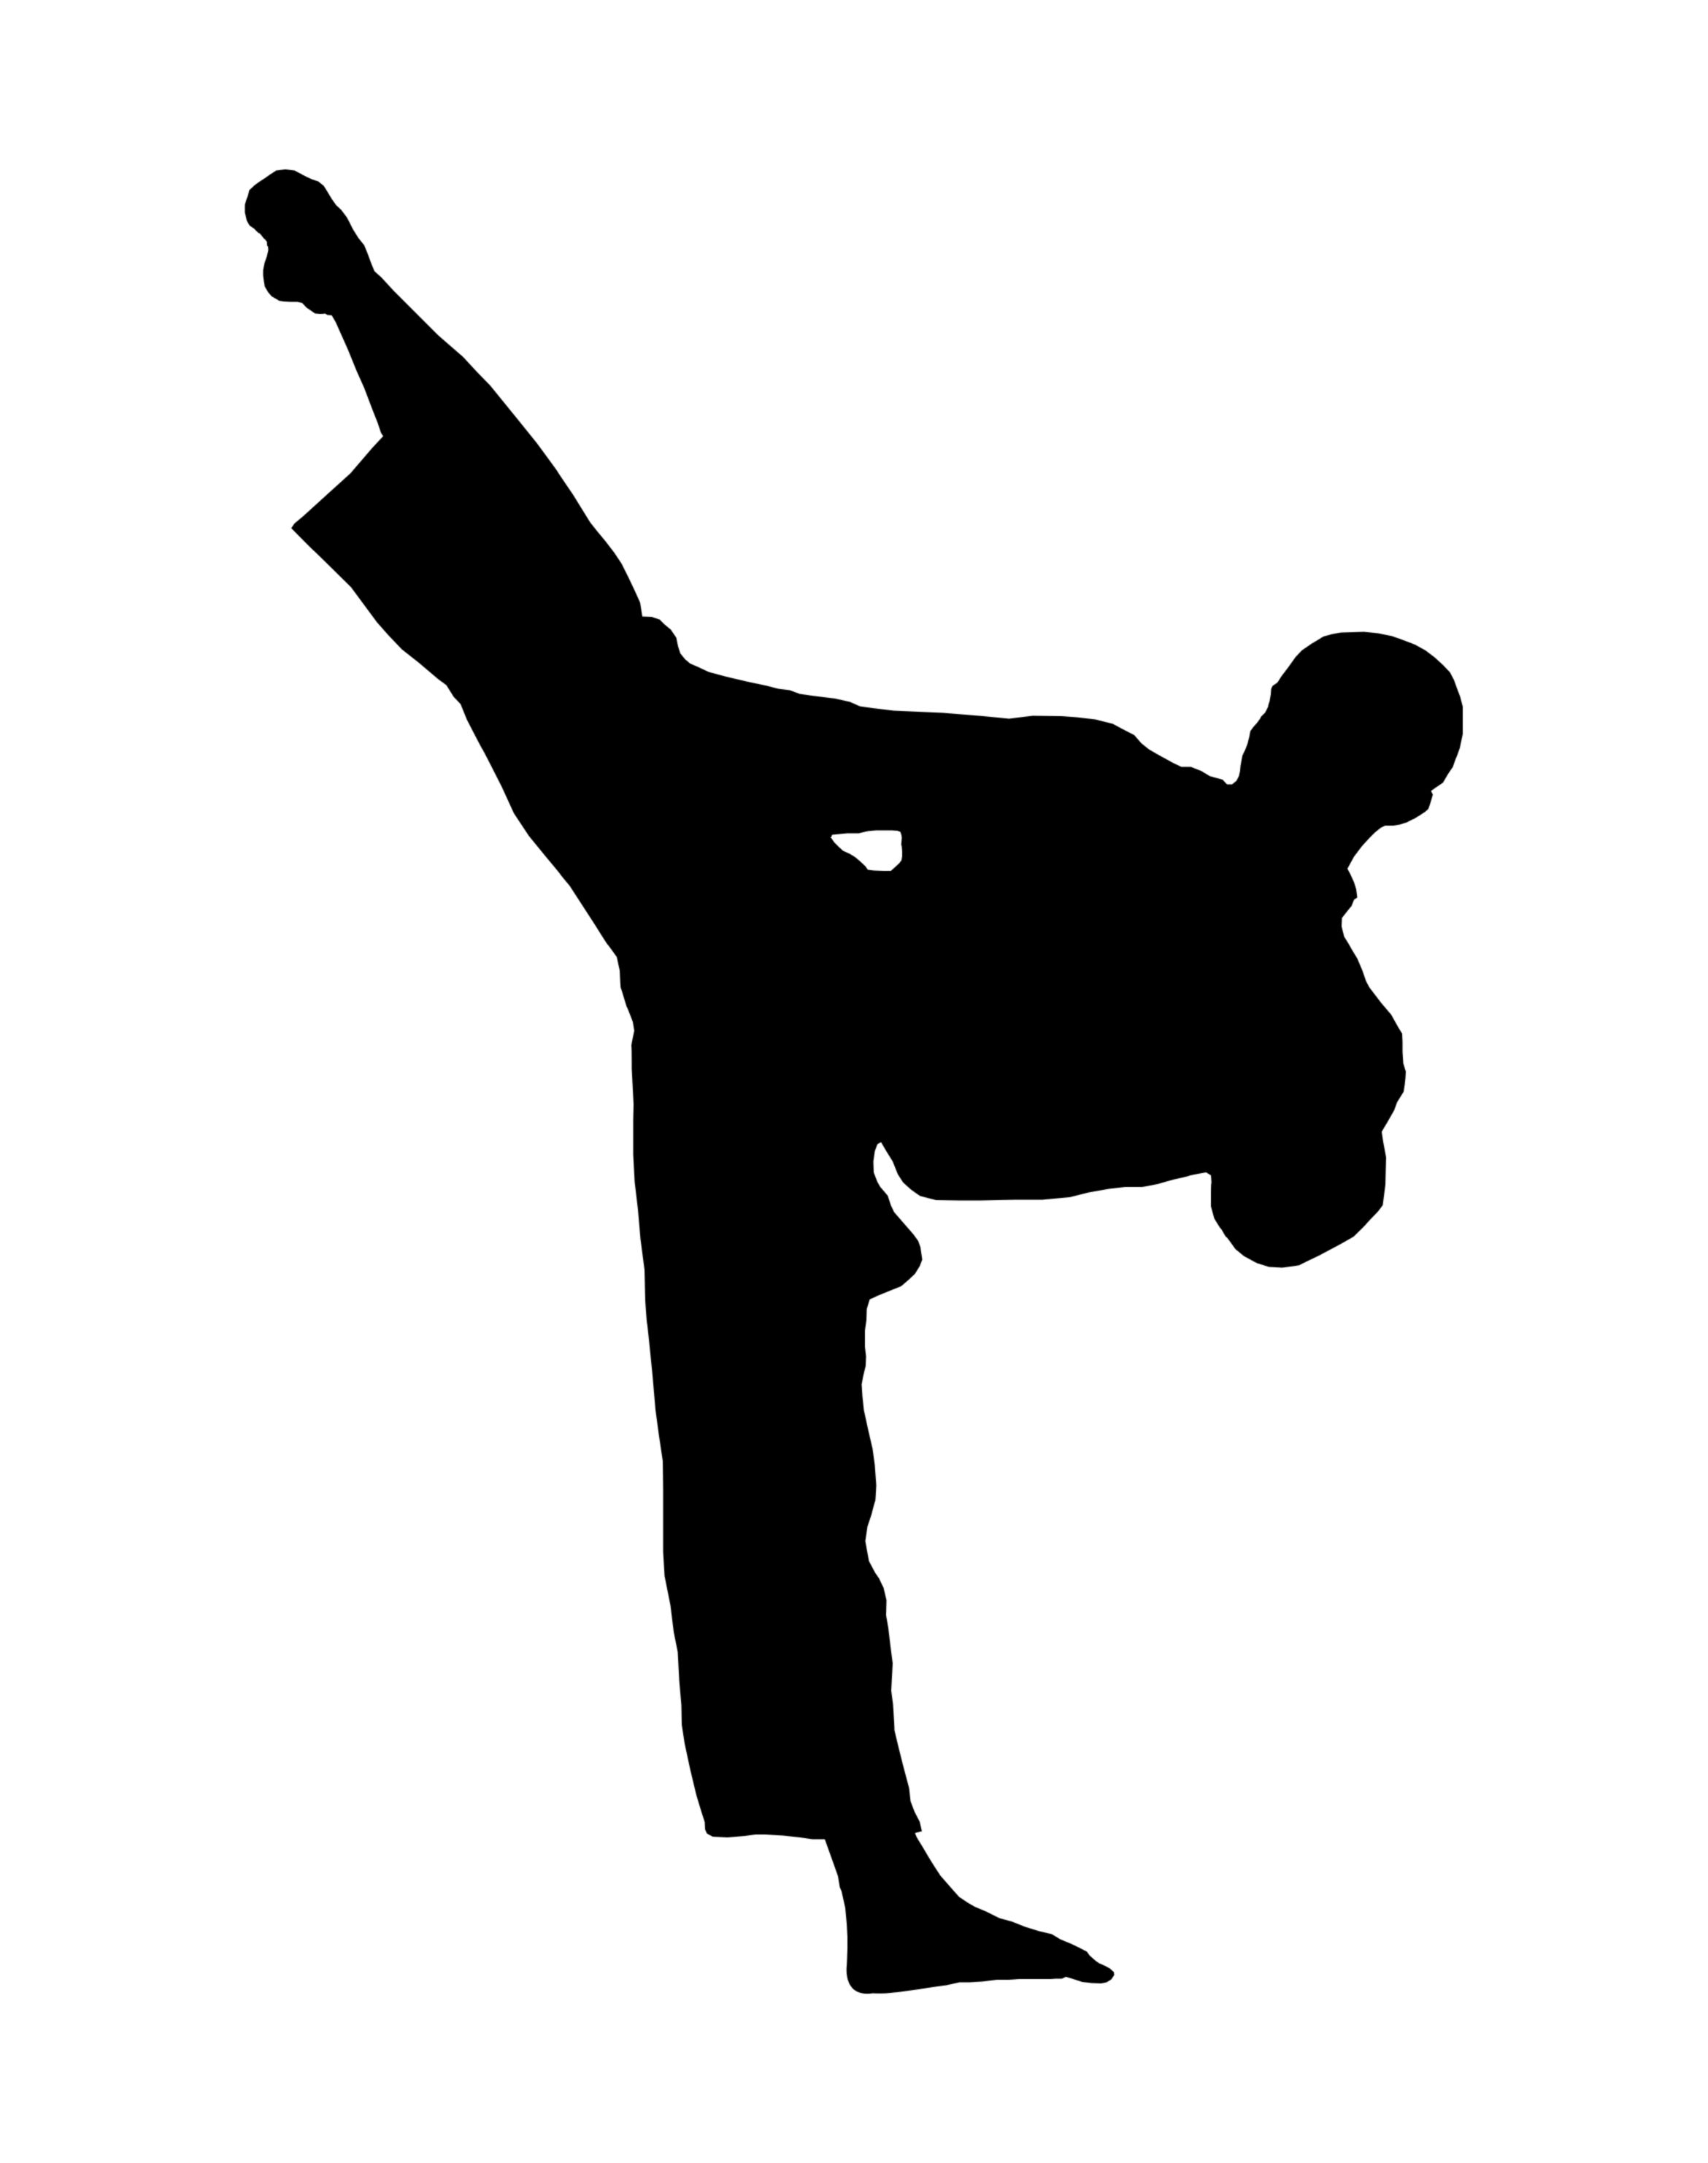 martial arts are my life besides art of course so it is way rh pinterest com martial arts clipart png martial arts clipart free